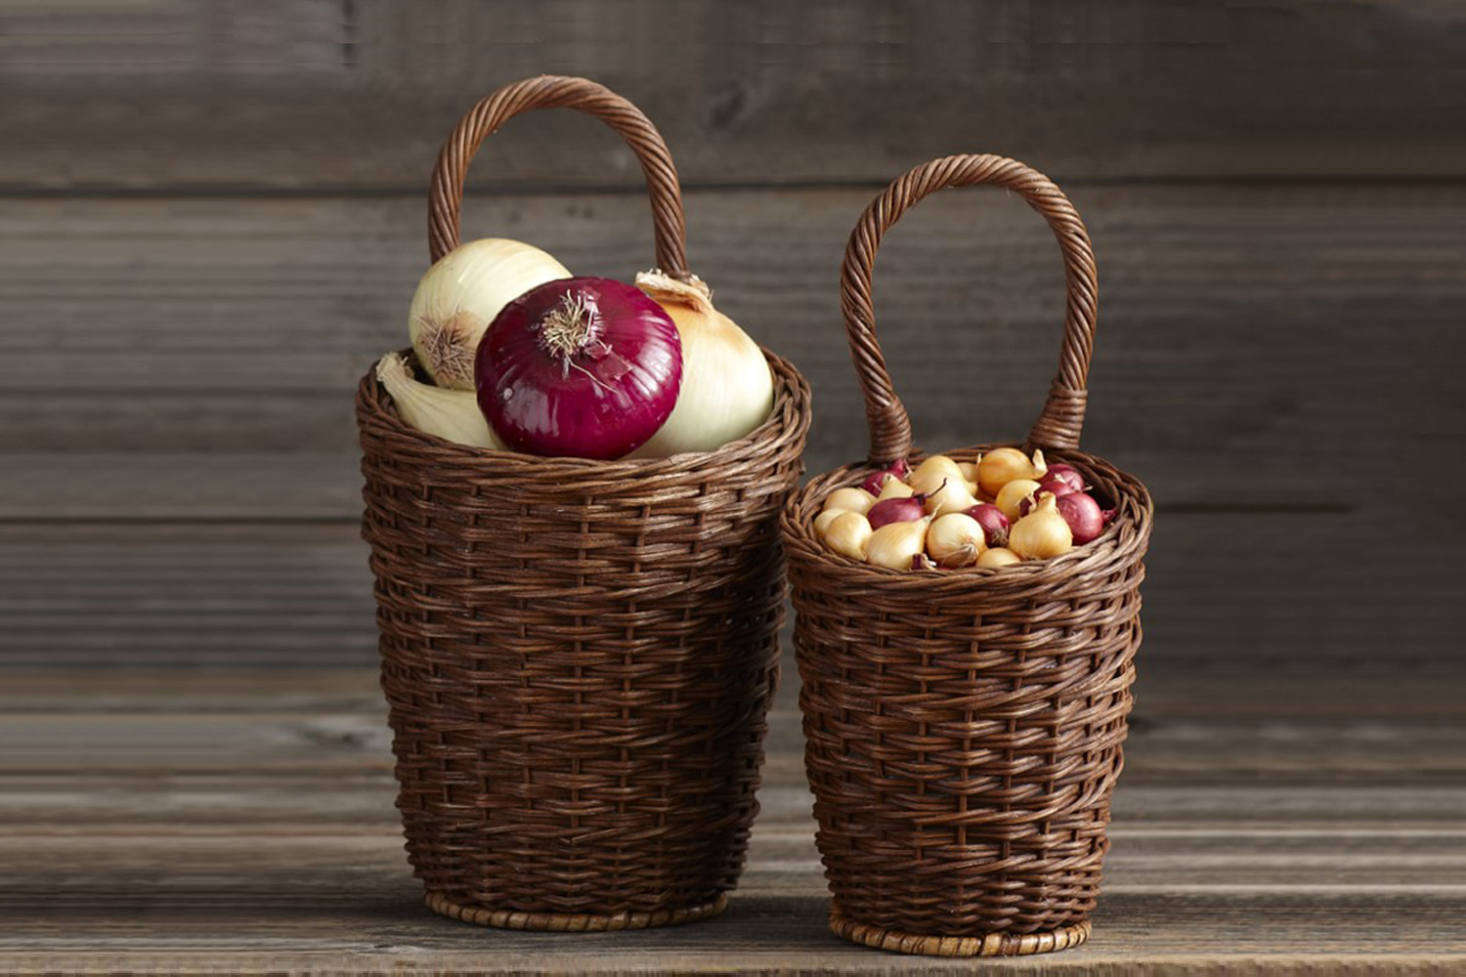 A set of two hand-woven rattan Onion Baskets (the tall one is 14 inches high, including its handle; the smaller one is 13½ inches) is $29.95 from Williams-Sonoma.